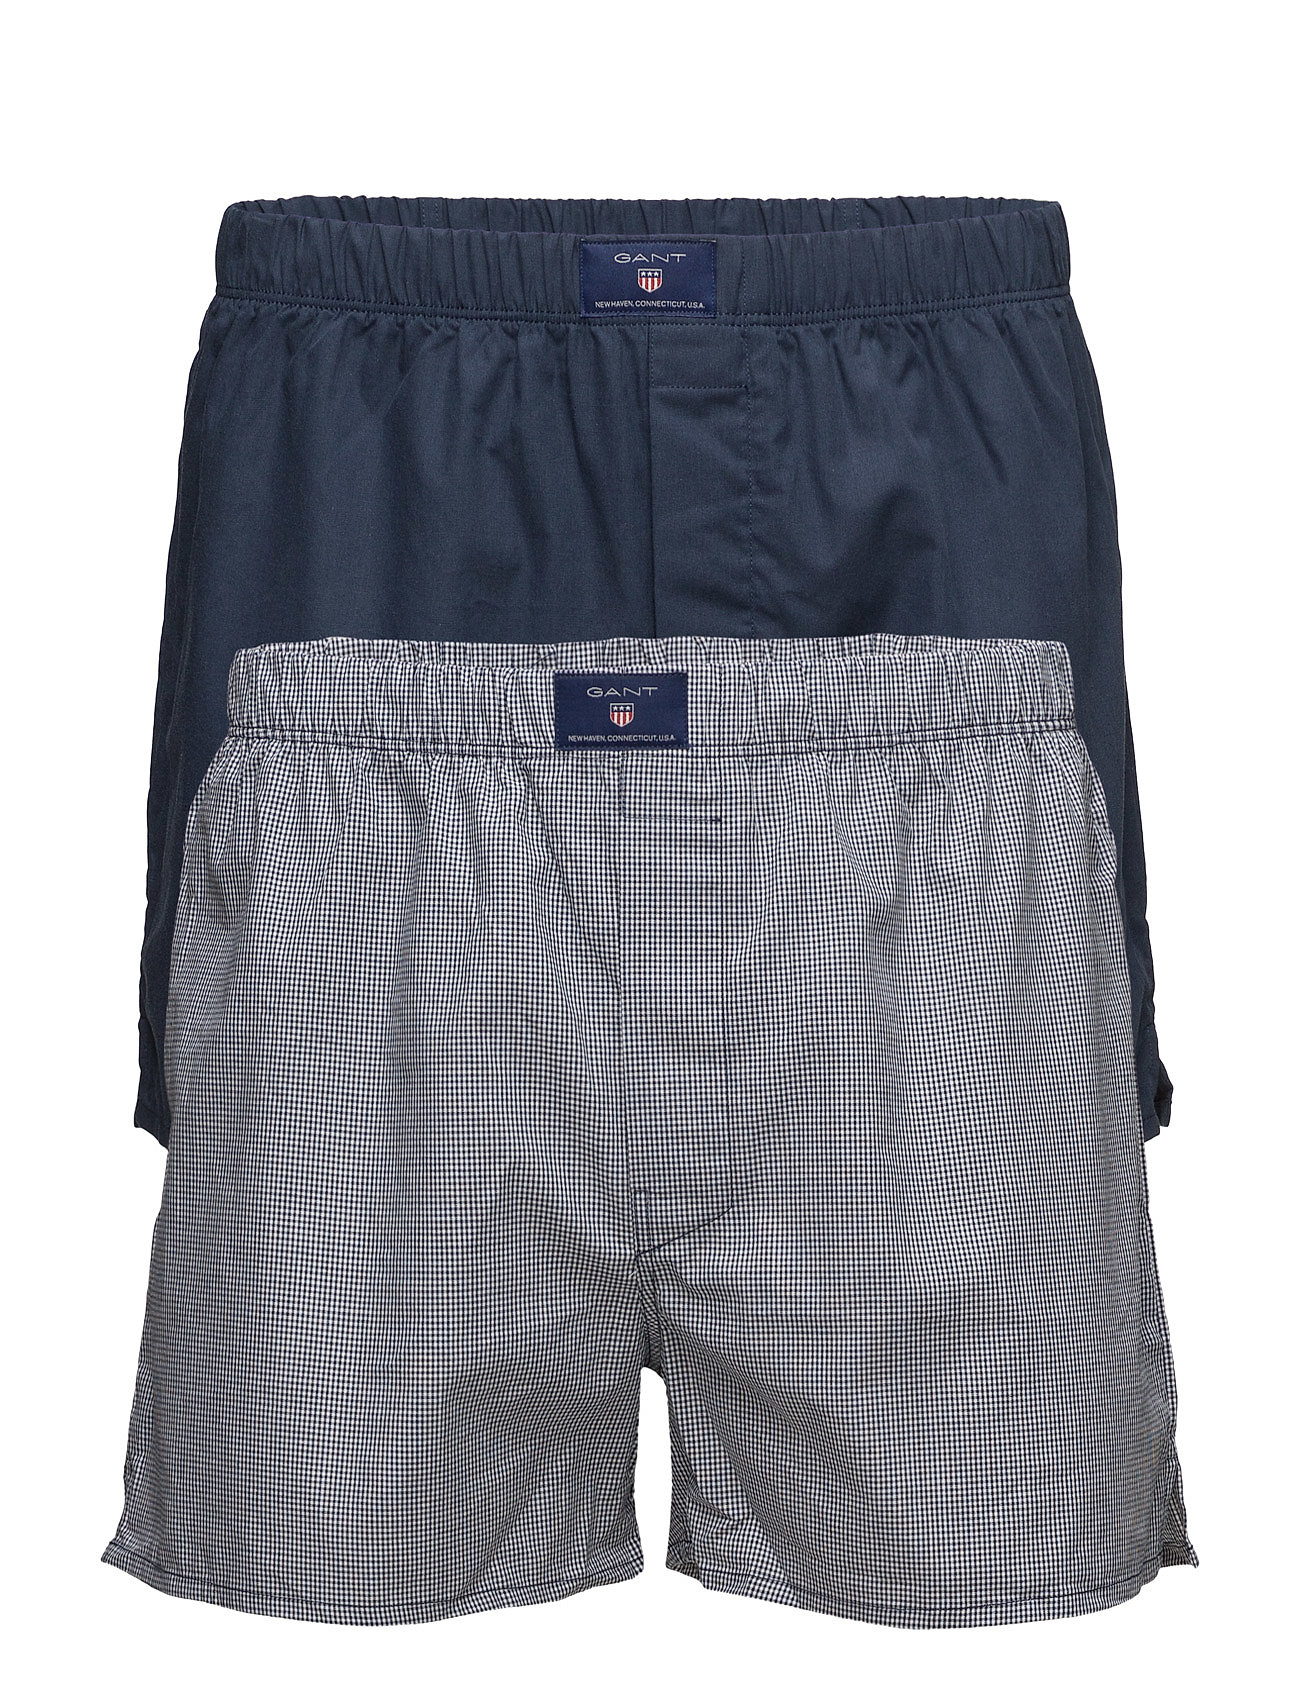 Gant 2-P BOXER SH GING SOLID TUNNEL - NAVY